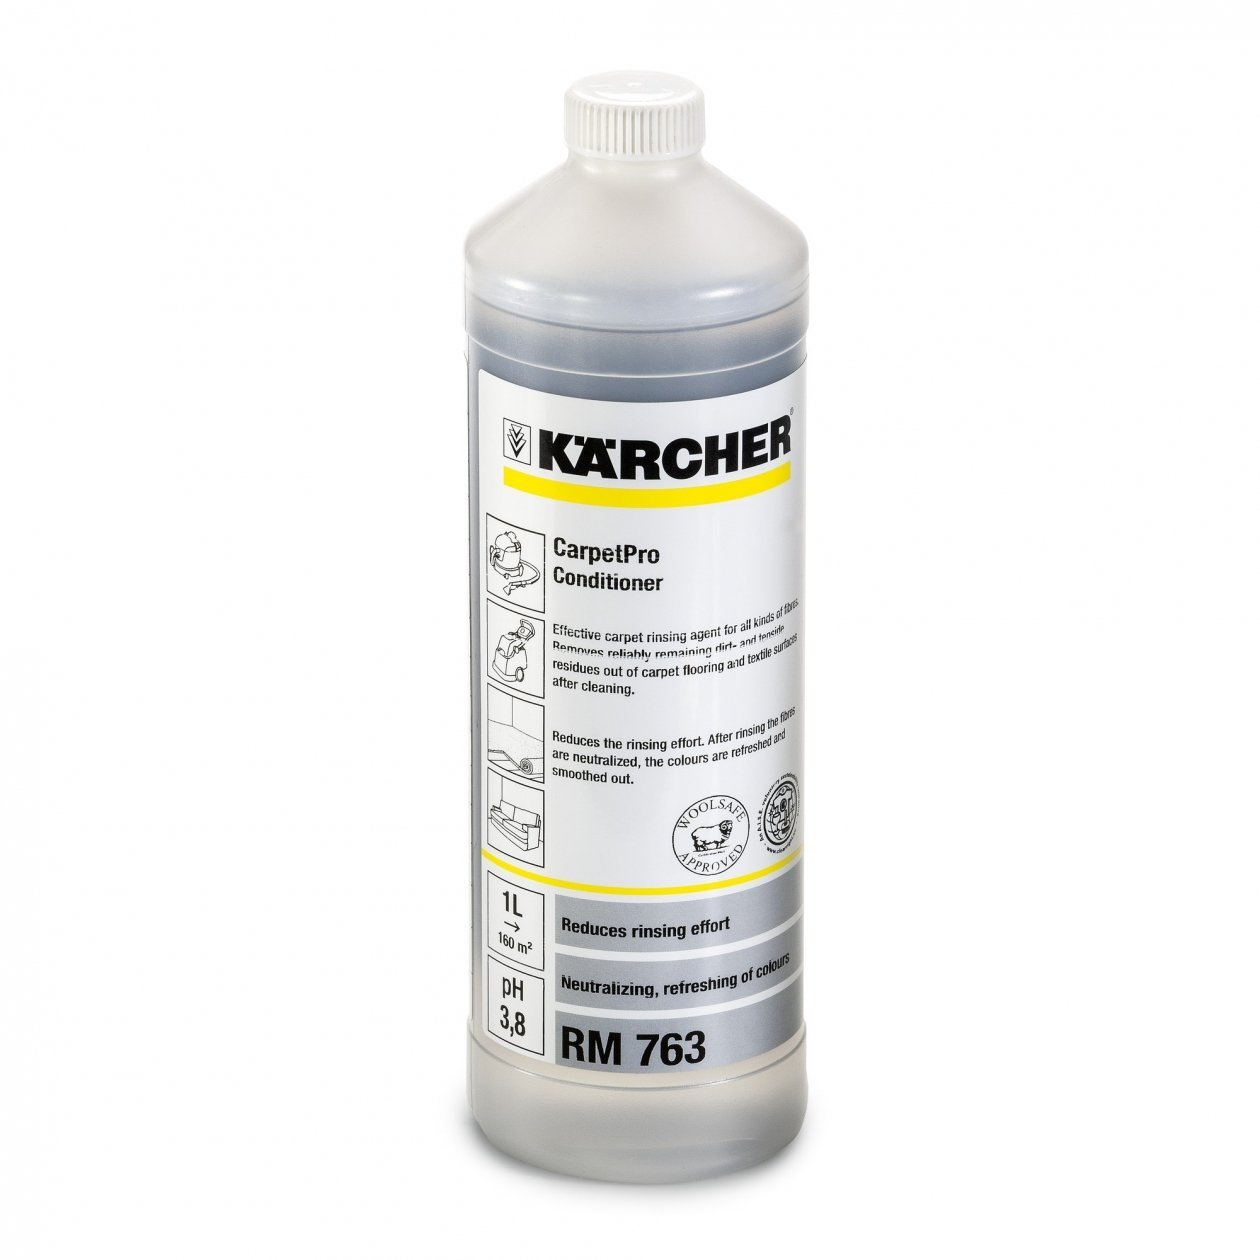 Karcher CarpetPro Conditioner RM 763 62958440, 1 l